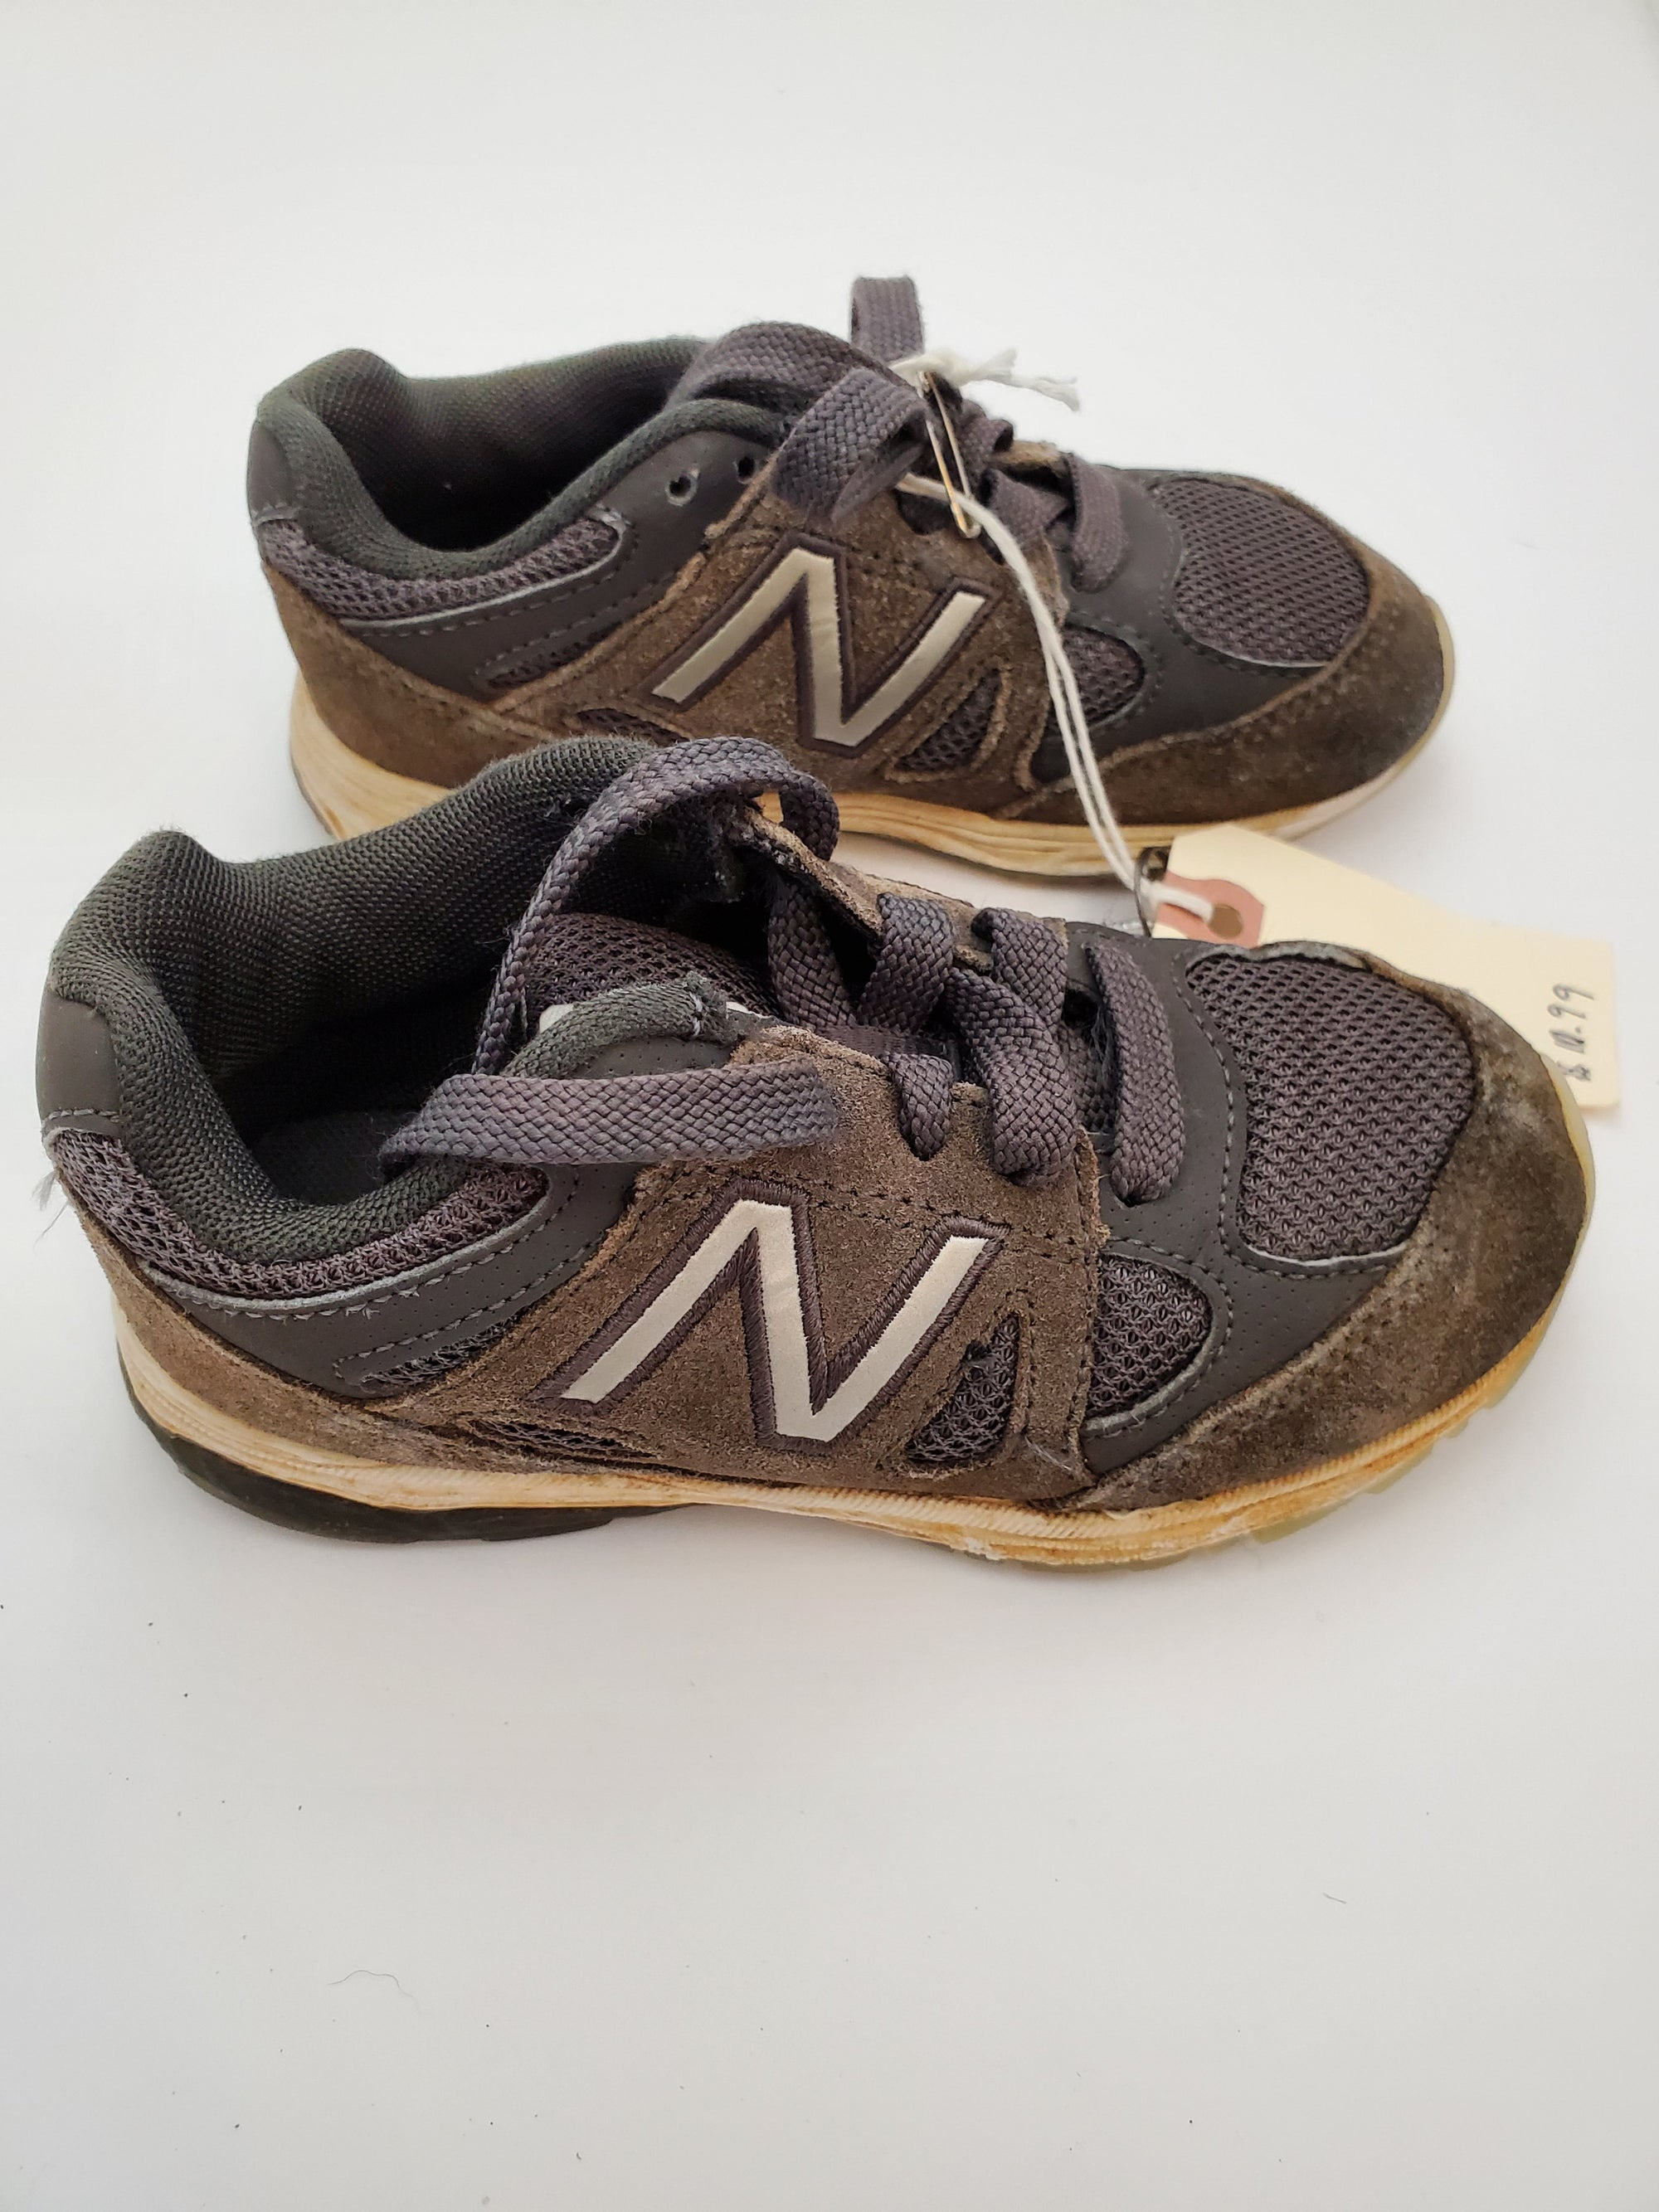 C9.5 New Balance Athletic Shoes - Grey